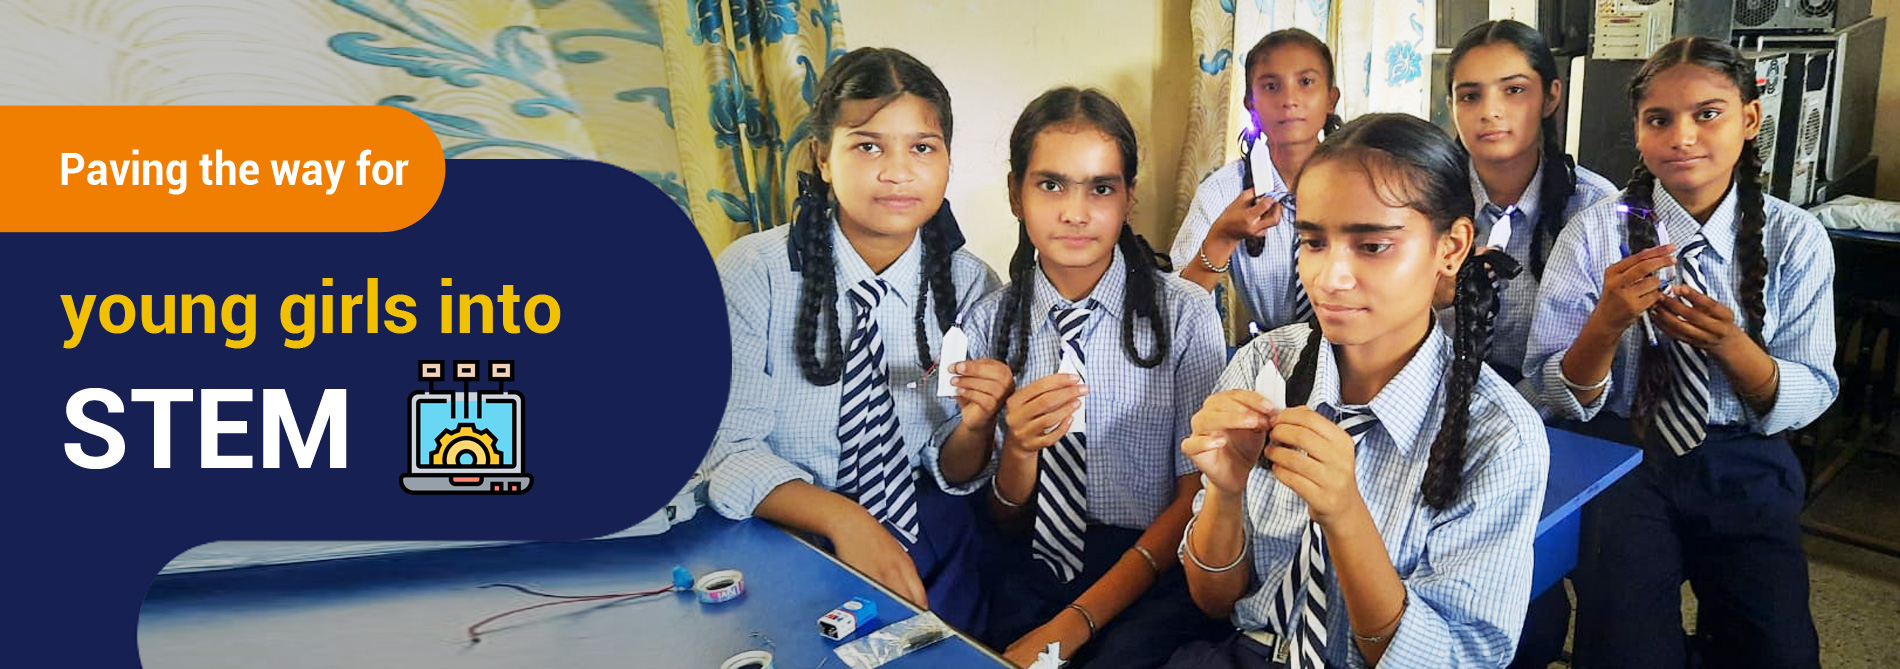 Paving the way for young girls into STEM